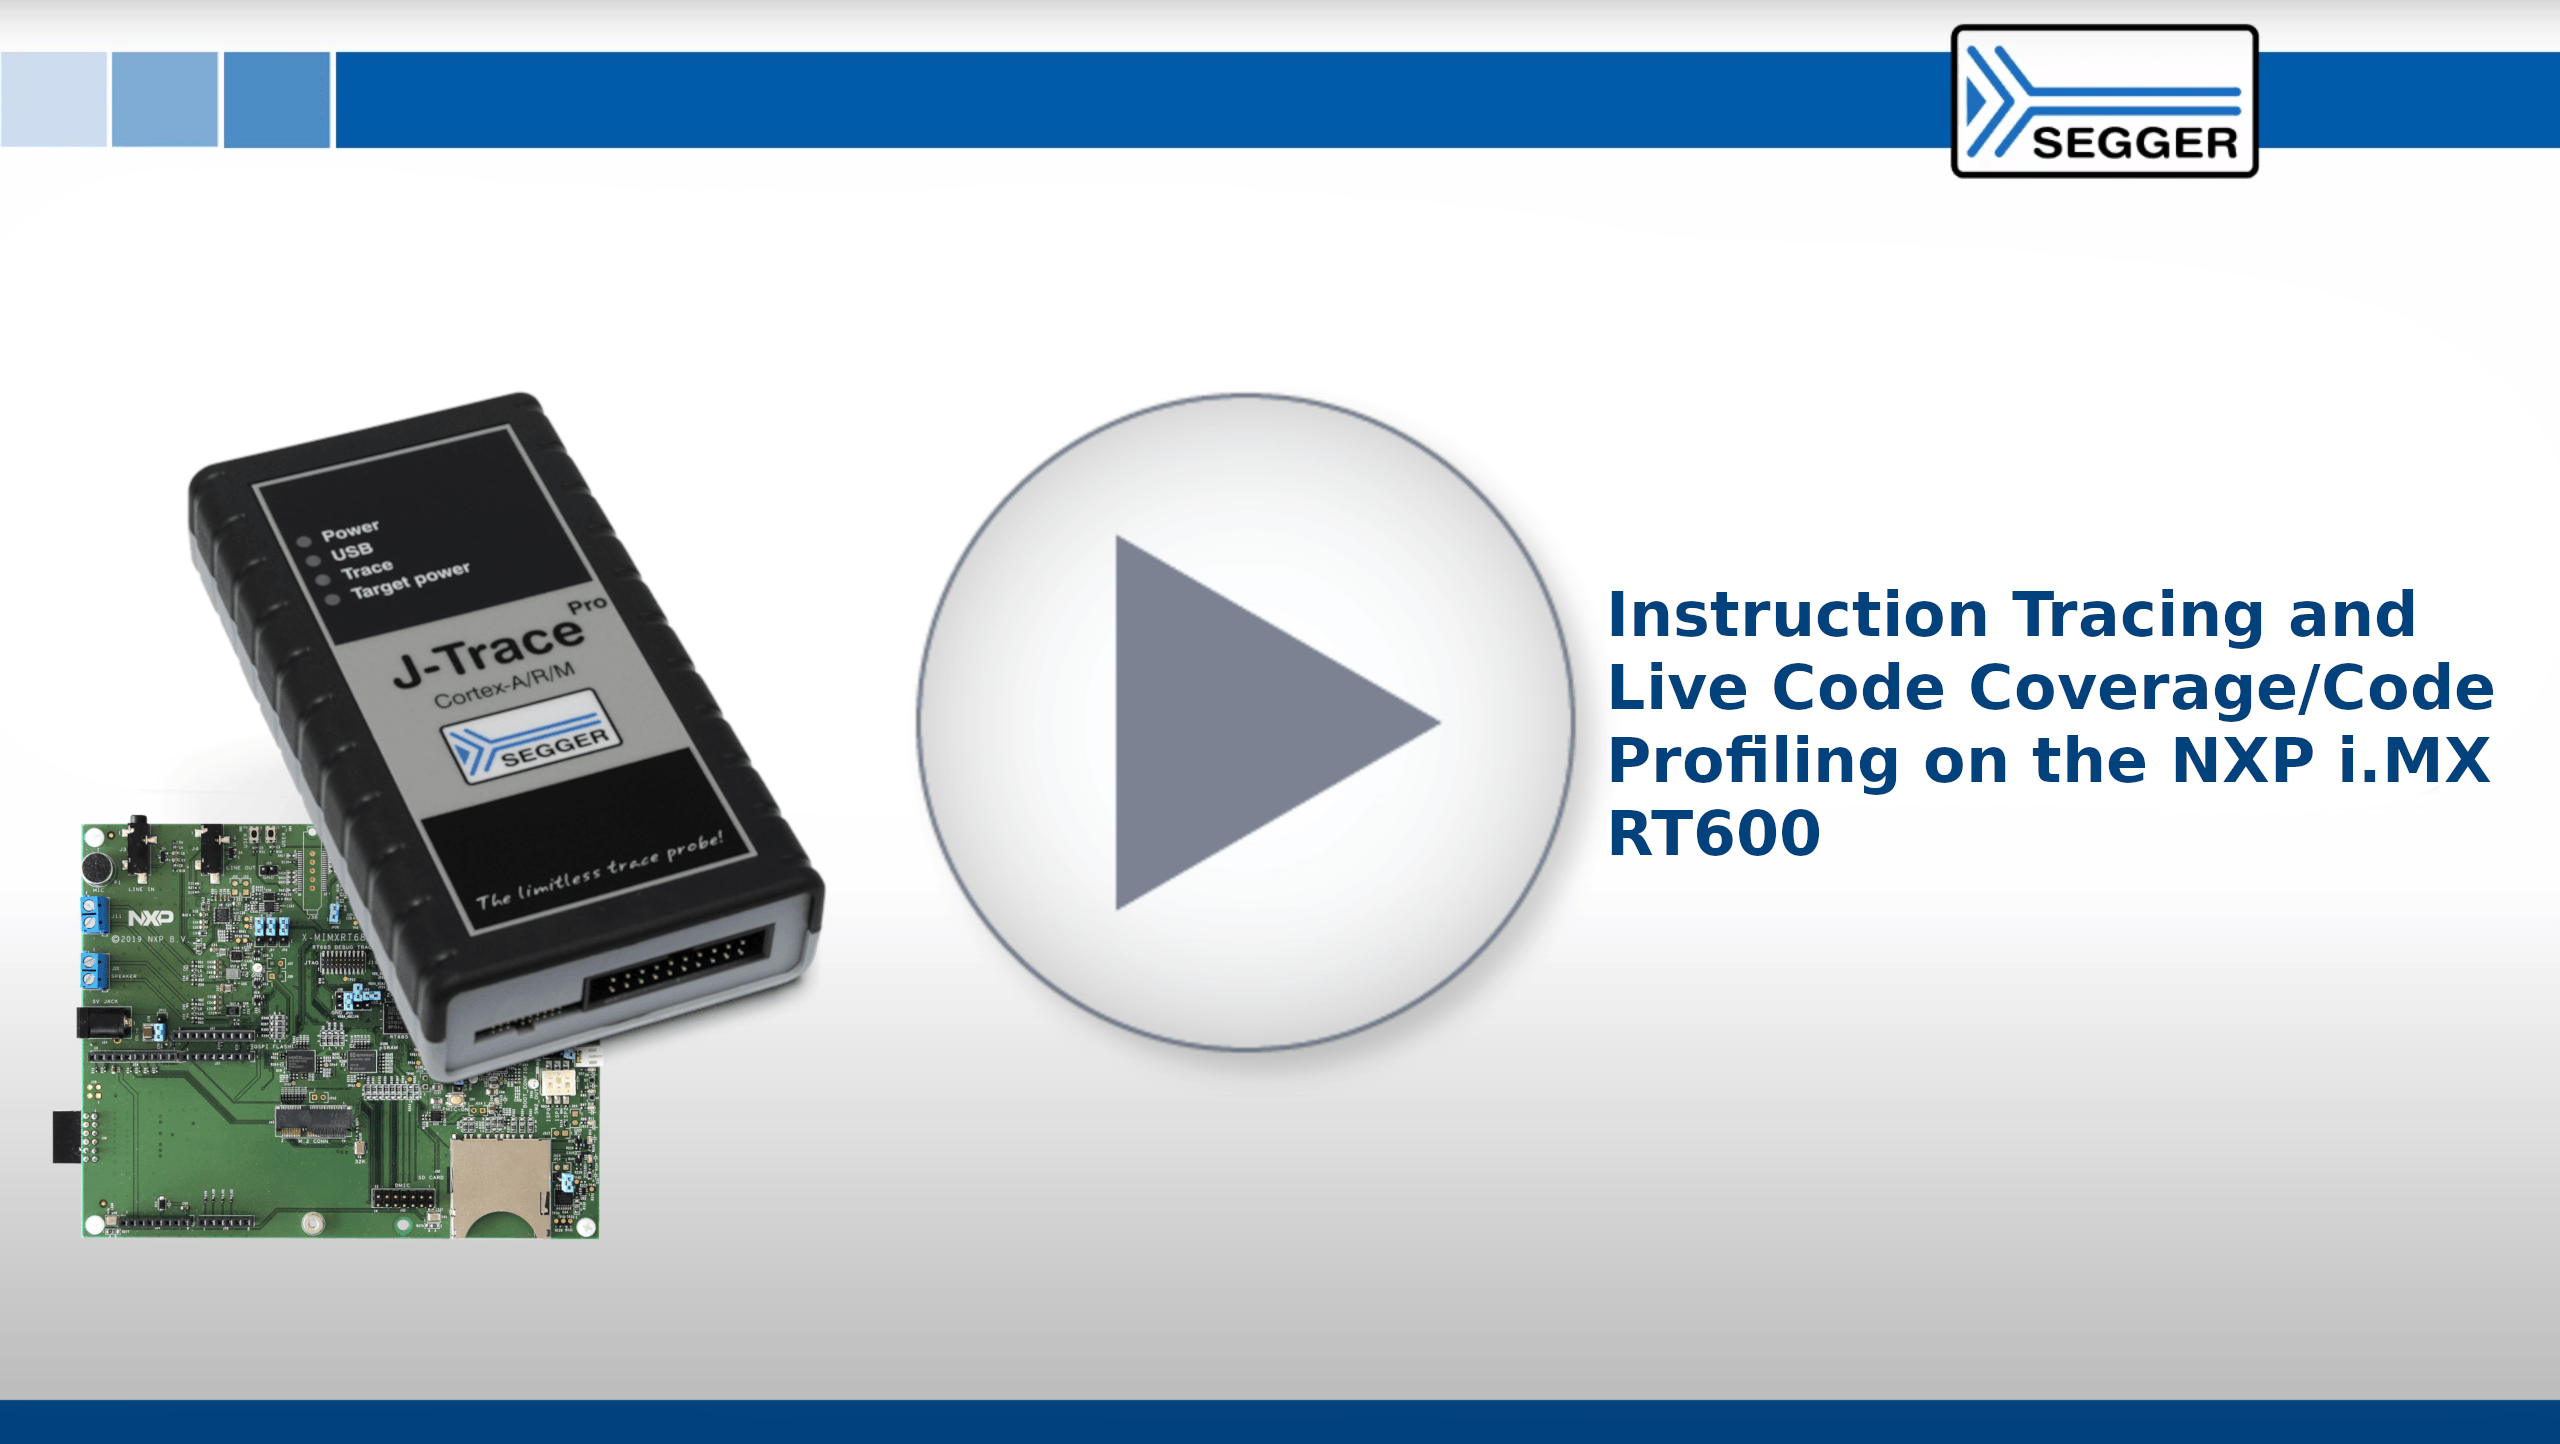 Instruction Tracing and Live Code Coverage / Code Profiling on the NXP i.MX RT600